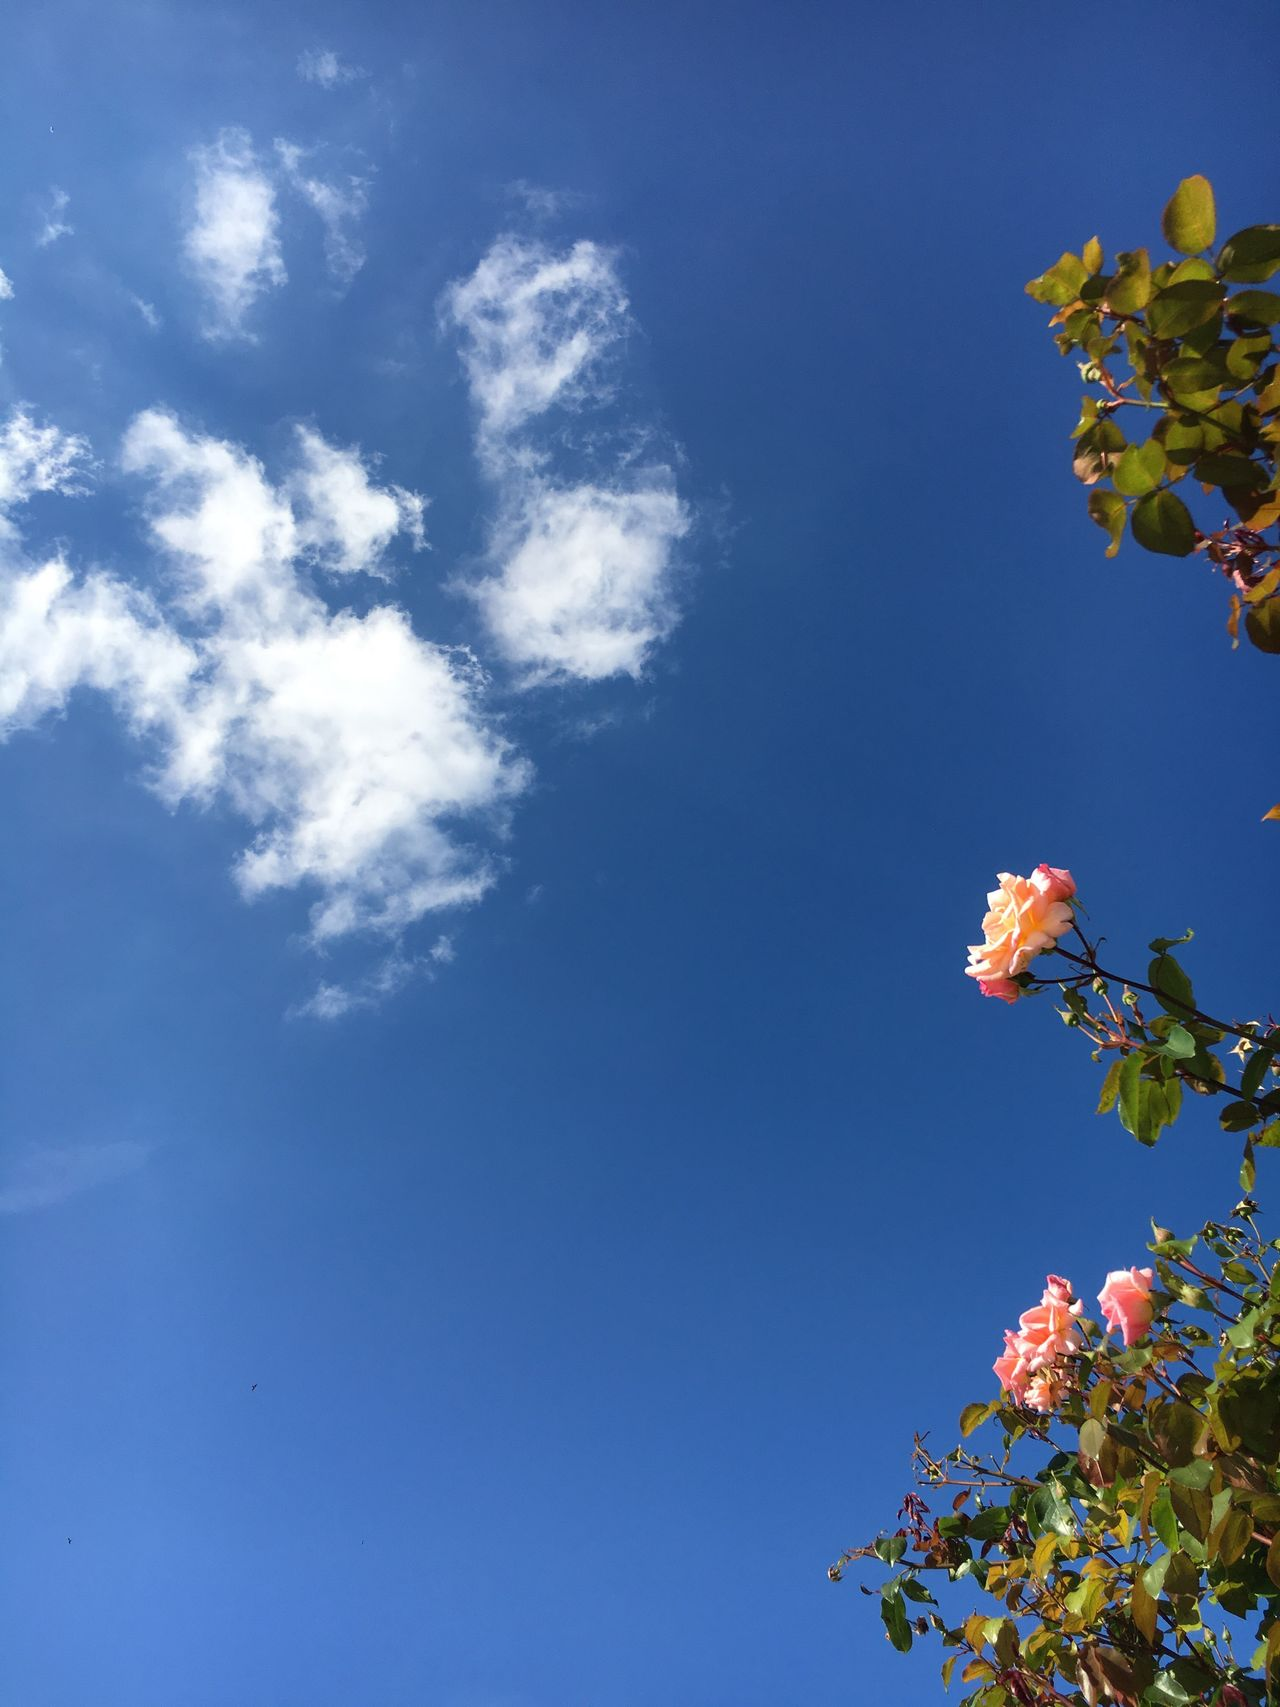 Blue summer skies Blue Flower Tree Freshness Sky Beauty In Nature Nature Day Summer rose Rose Bush clouds Blue Sky And Clouds Blue Sky White Clouds Blue Sky And White Clouds Blue Skies Roses Blue Sky Thinking First Eyeem Photo